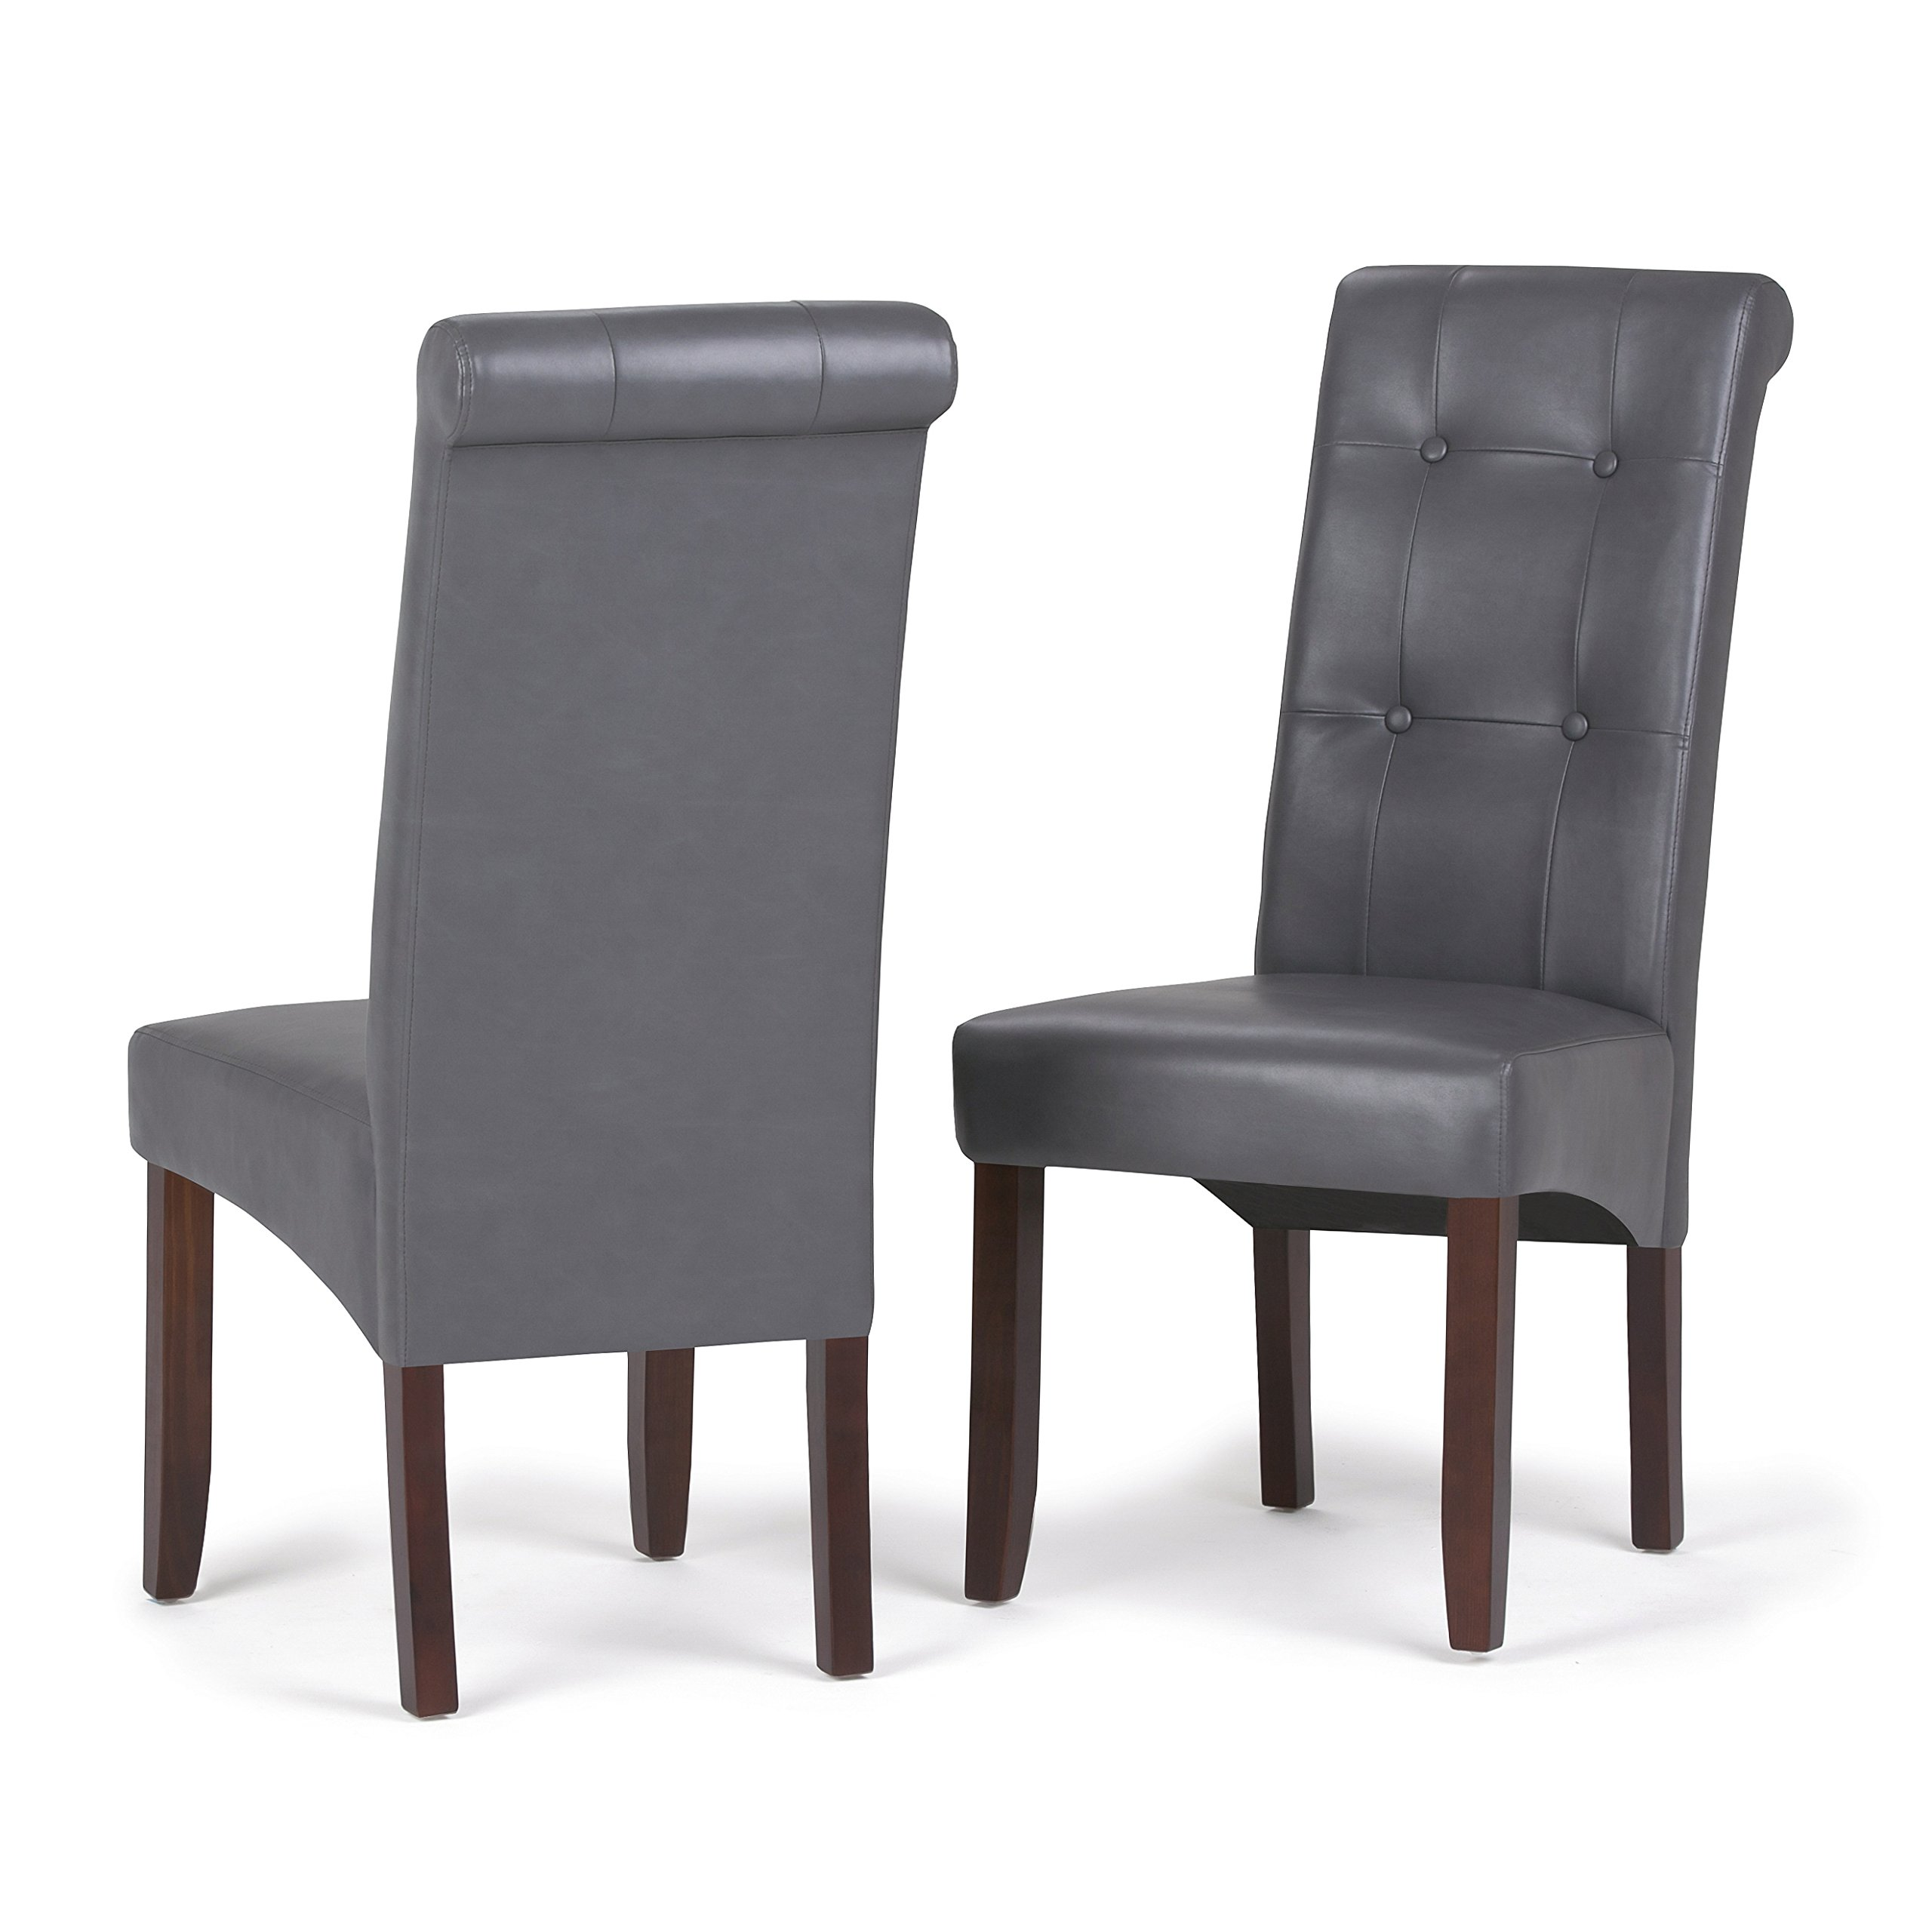 Simpli Home WS5109-4-G Cosmopolitan Contemporary Deluxe Tufted Parson Chair (Set of 2) in Stone Grey Faux Leather by Simpli Home